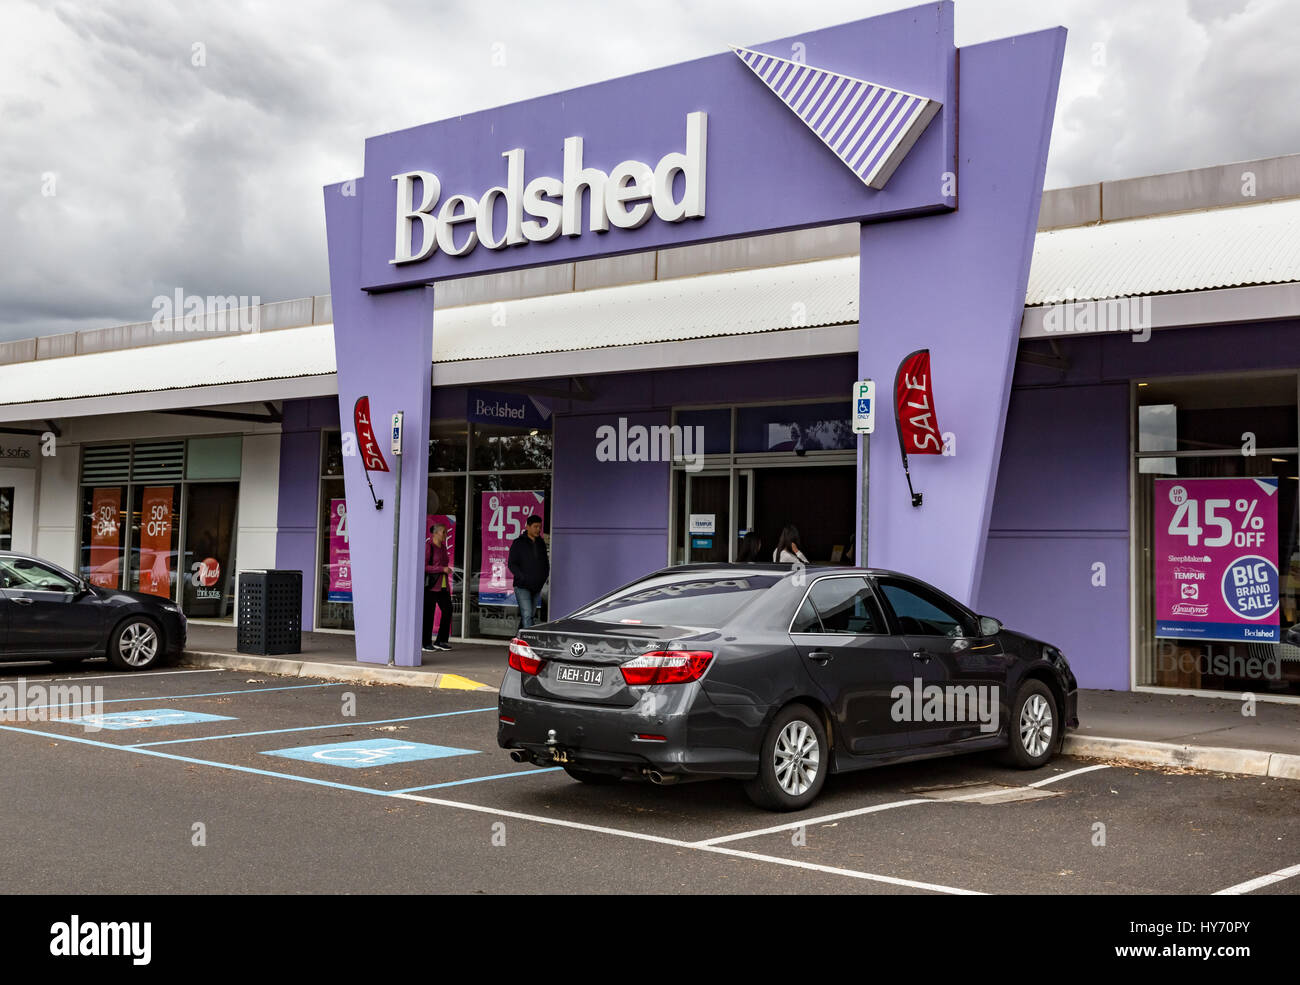 Bedshed Melbourne Bedshed Retain Bedding Store At Watergardens Shopping Precinct